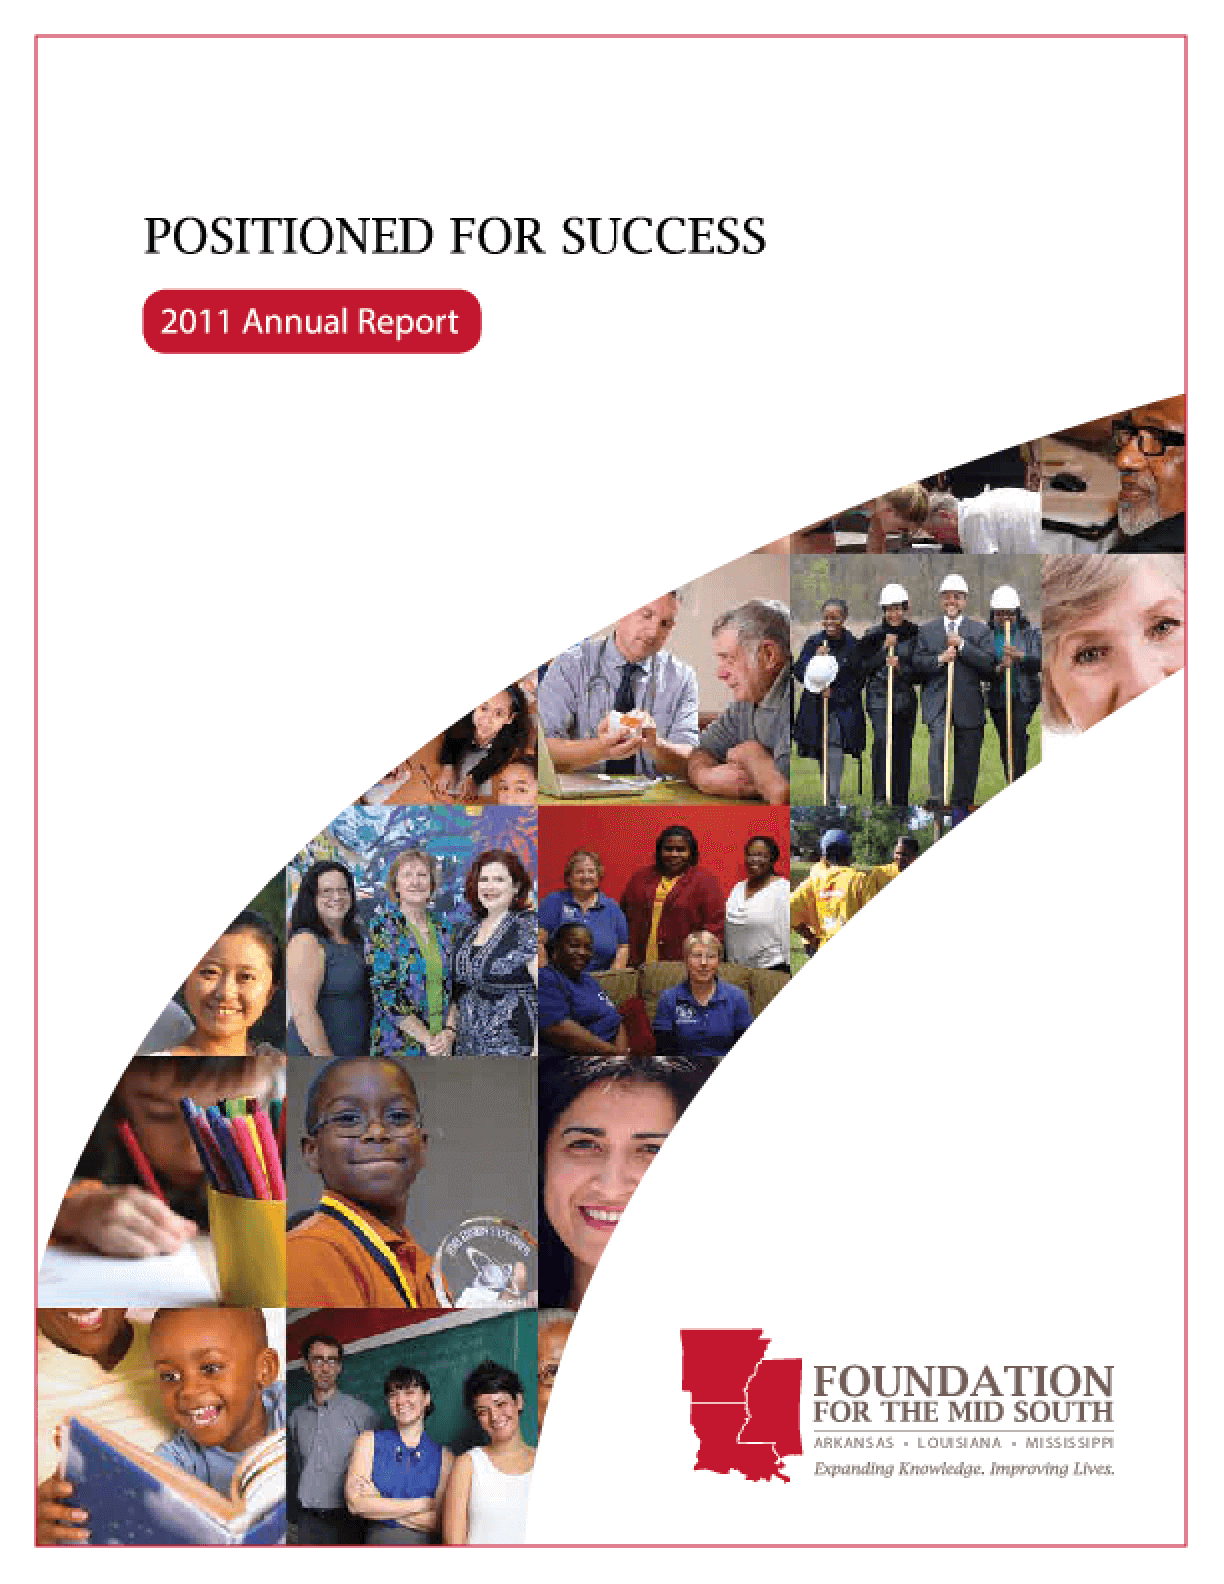 Positioned for Progress: 2011 Annual Report - Foundation for the Mid South